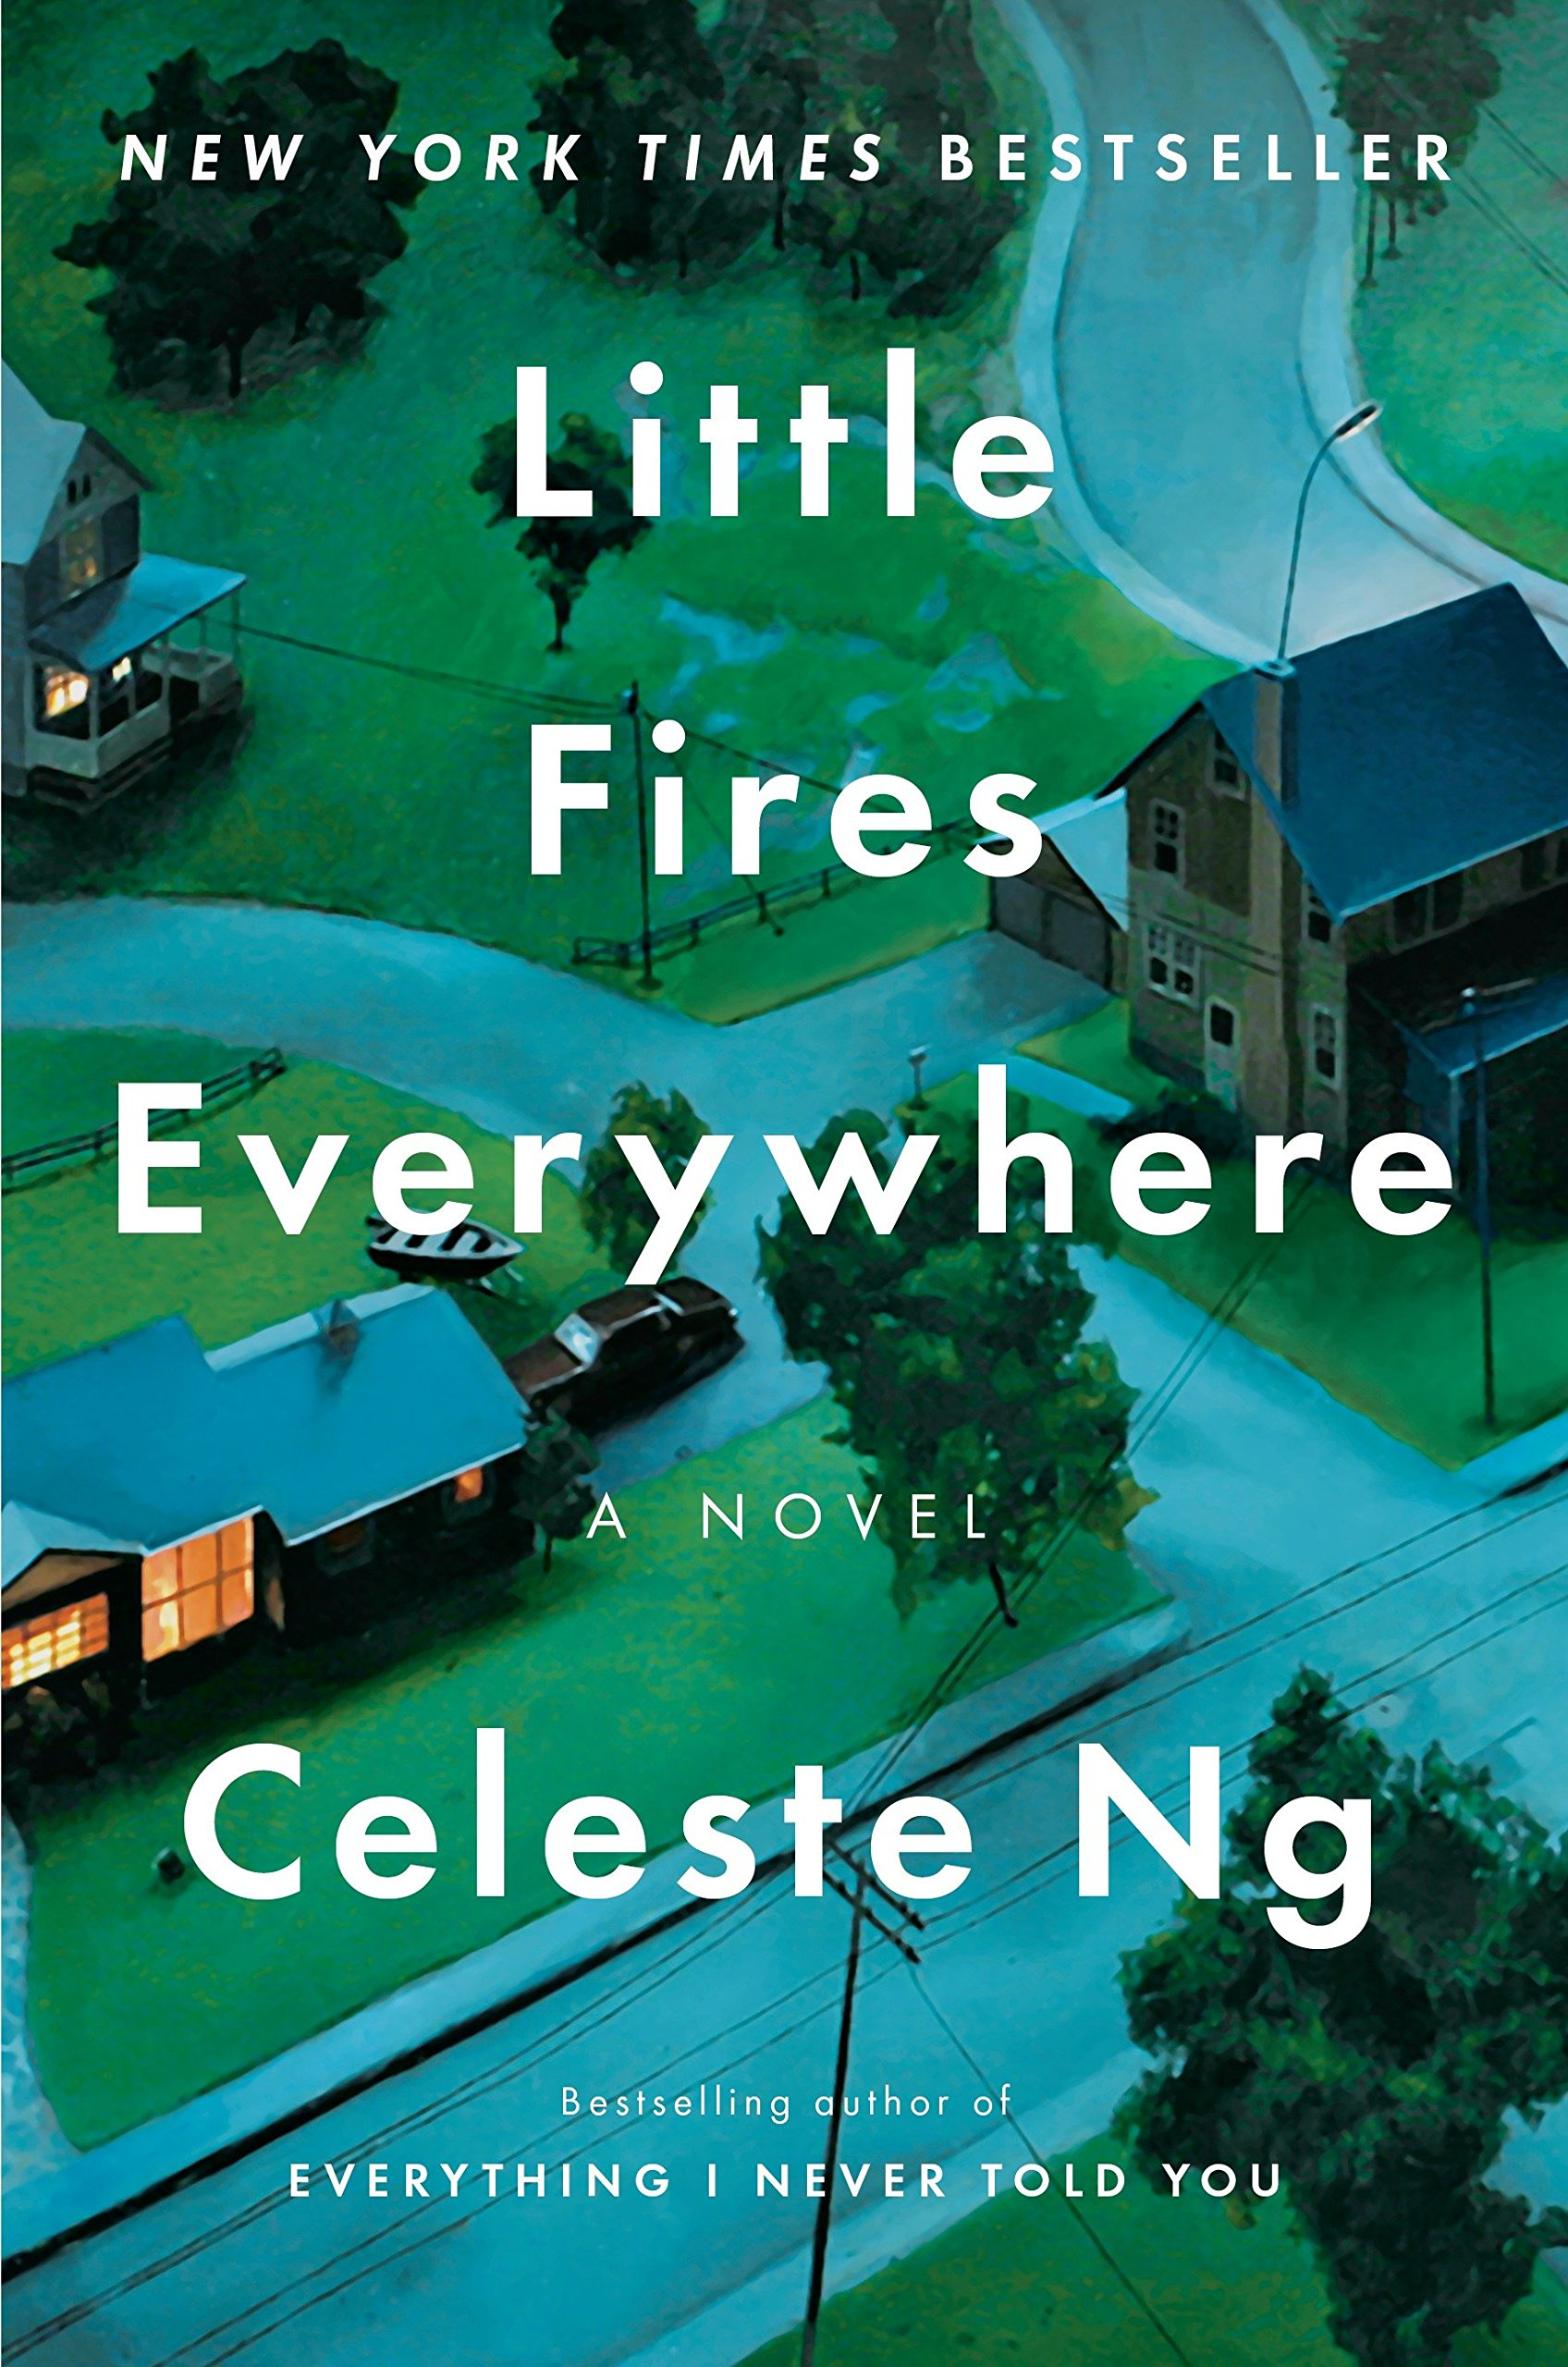 Image result for little fires everywhere book cover